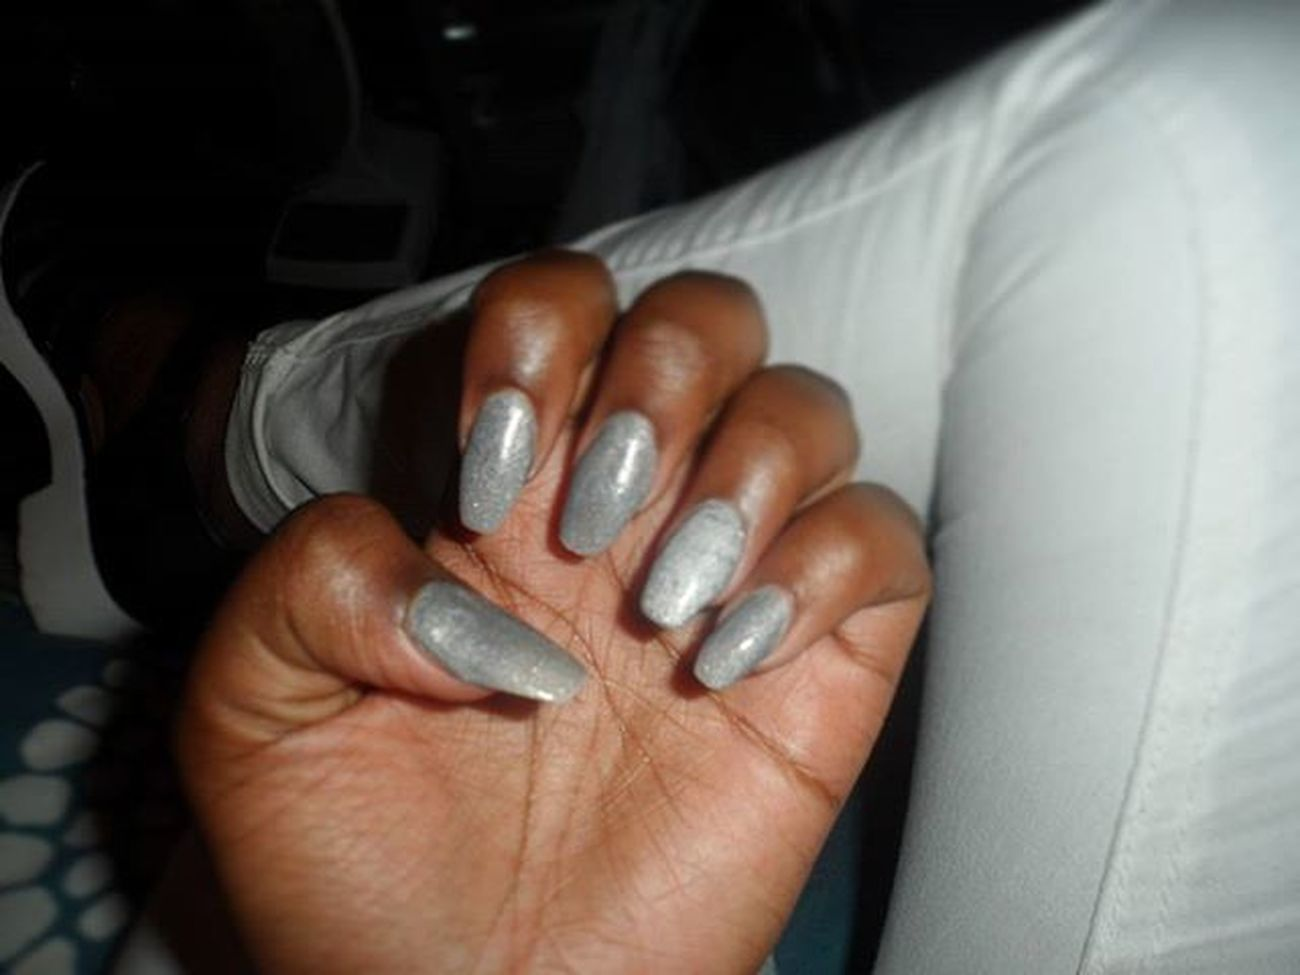 NailGameOnFleek SilverGrey♡ LegUpOnLeg WhiteSole Whitepants Shoes